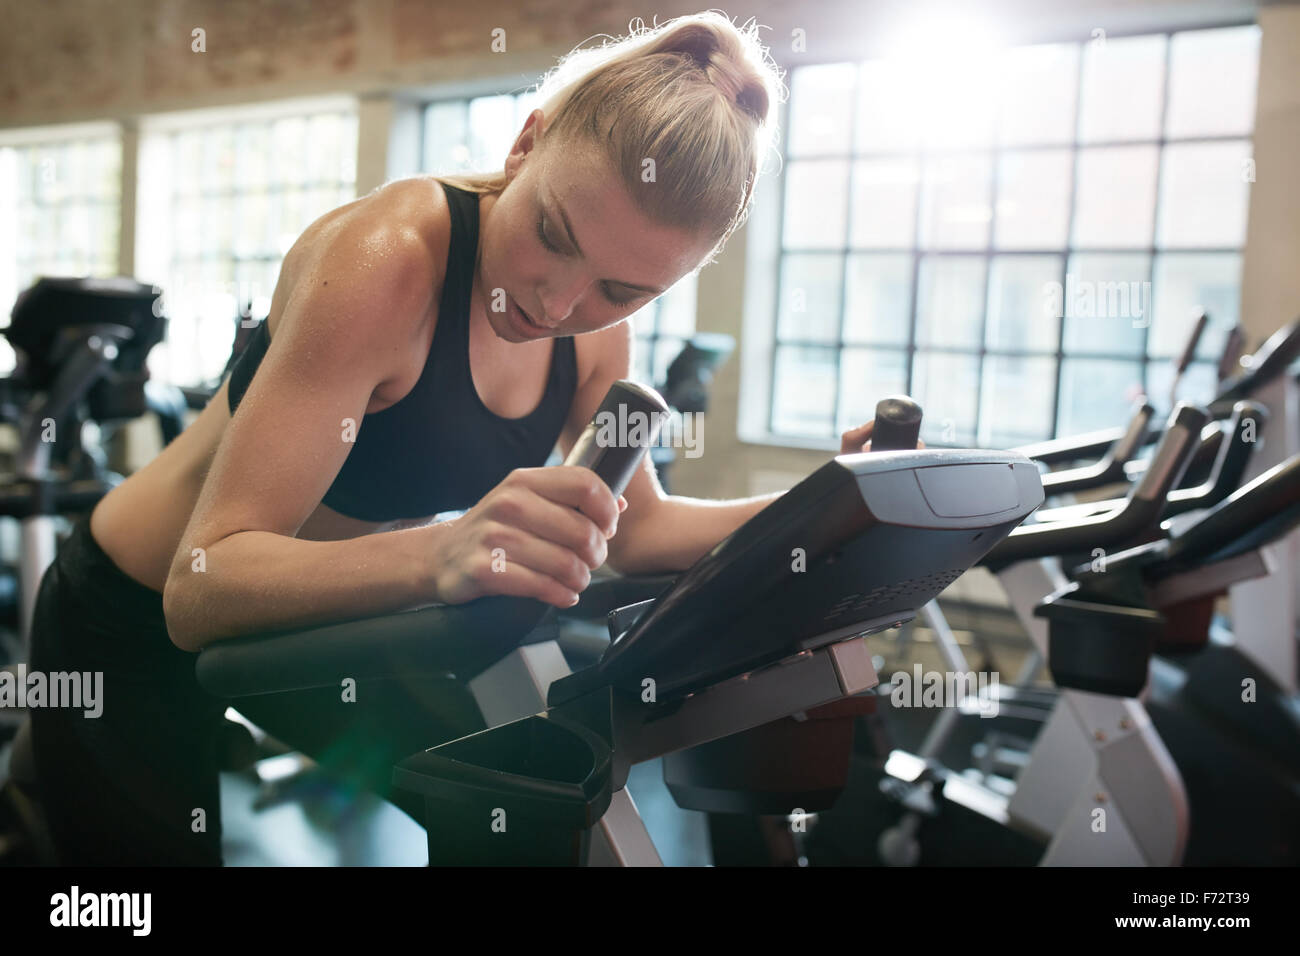 Fitness woman on bicycle doing cardio workout at gym. Fit young female exercising on gym bike. - Stock Image